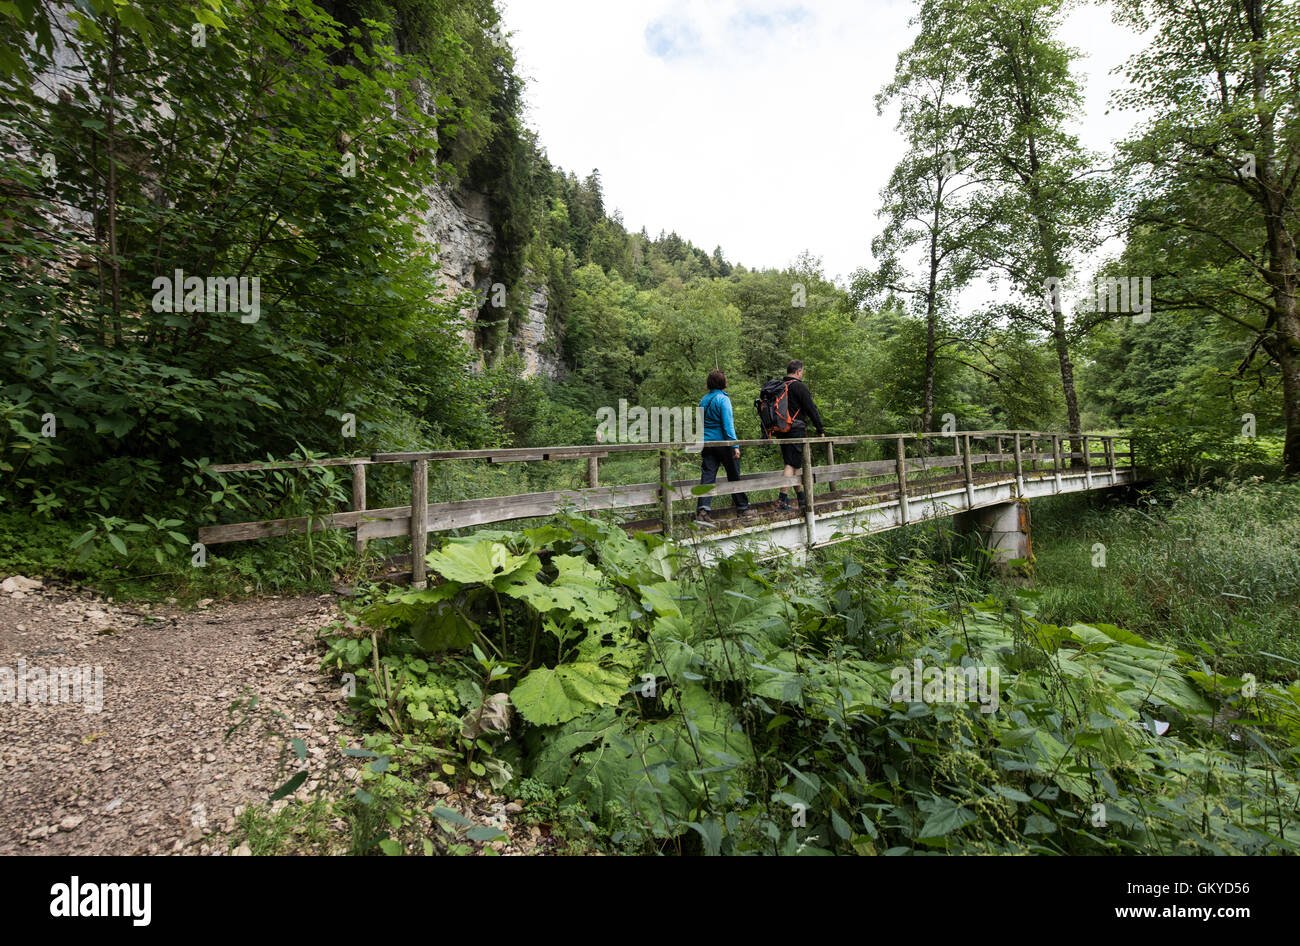 Bonndorf, Germany. 13th July, 2016. A view of the Wutachschlucht nature reserve in Bonndorf, Germany, 13 July 2016. - Stock Image